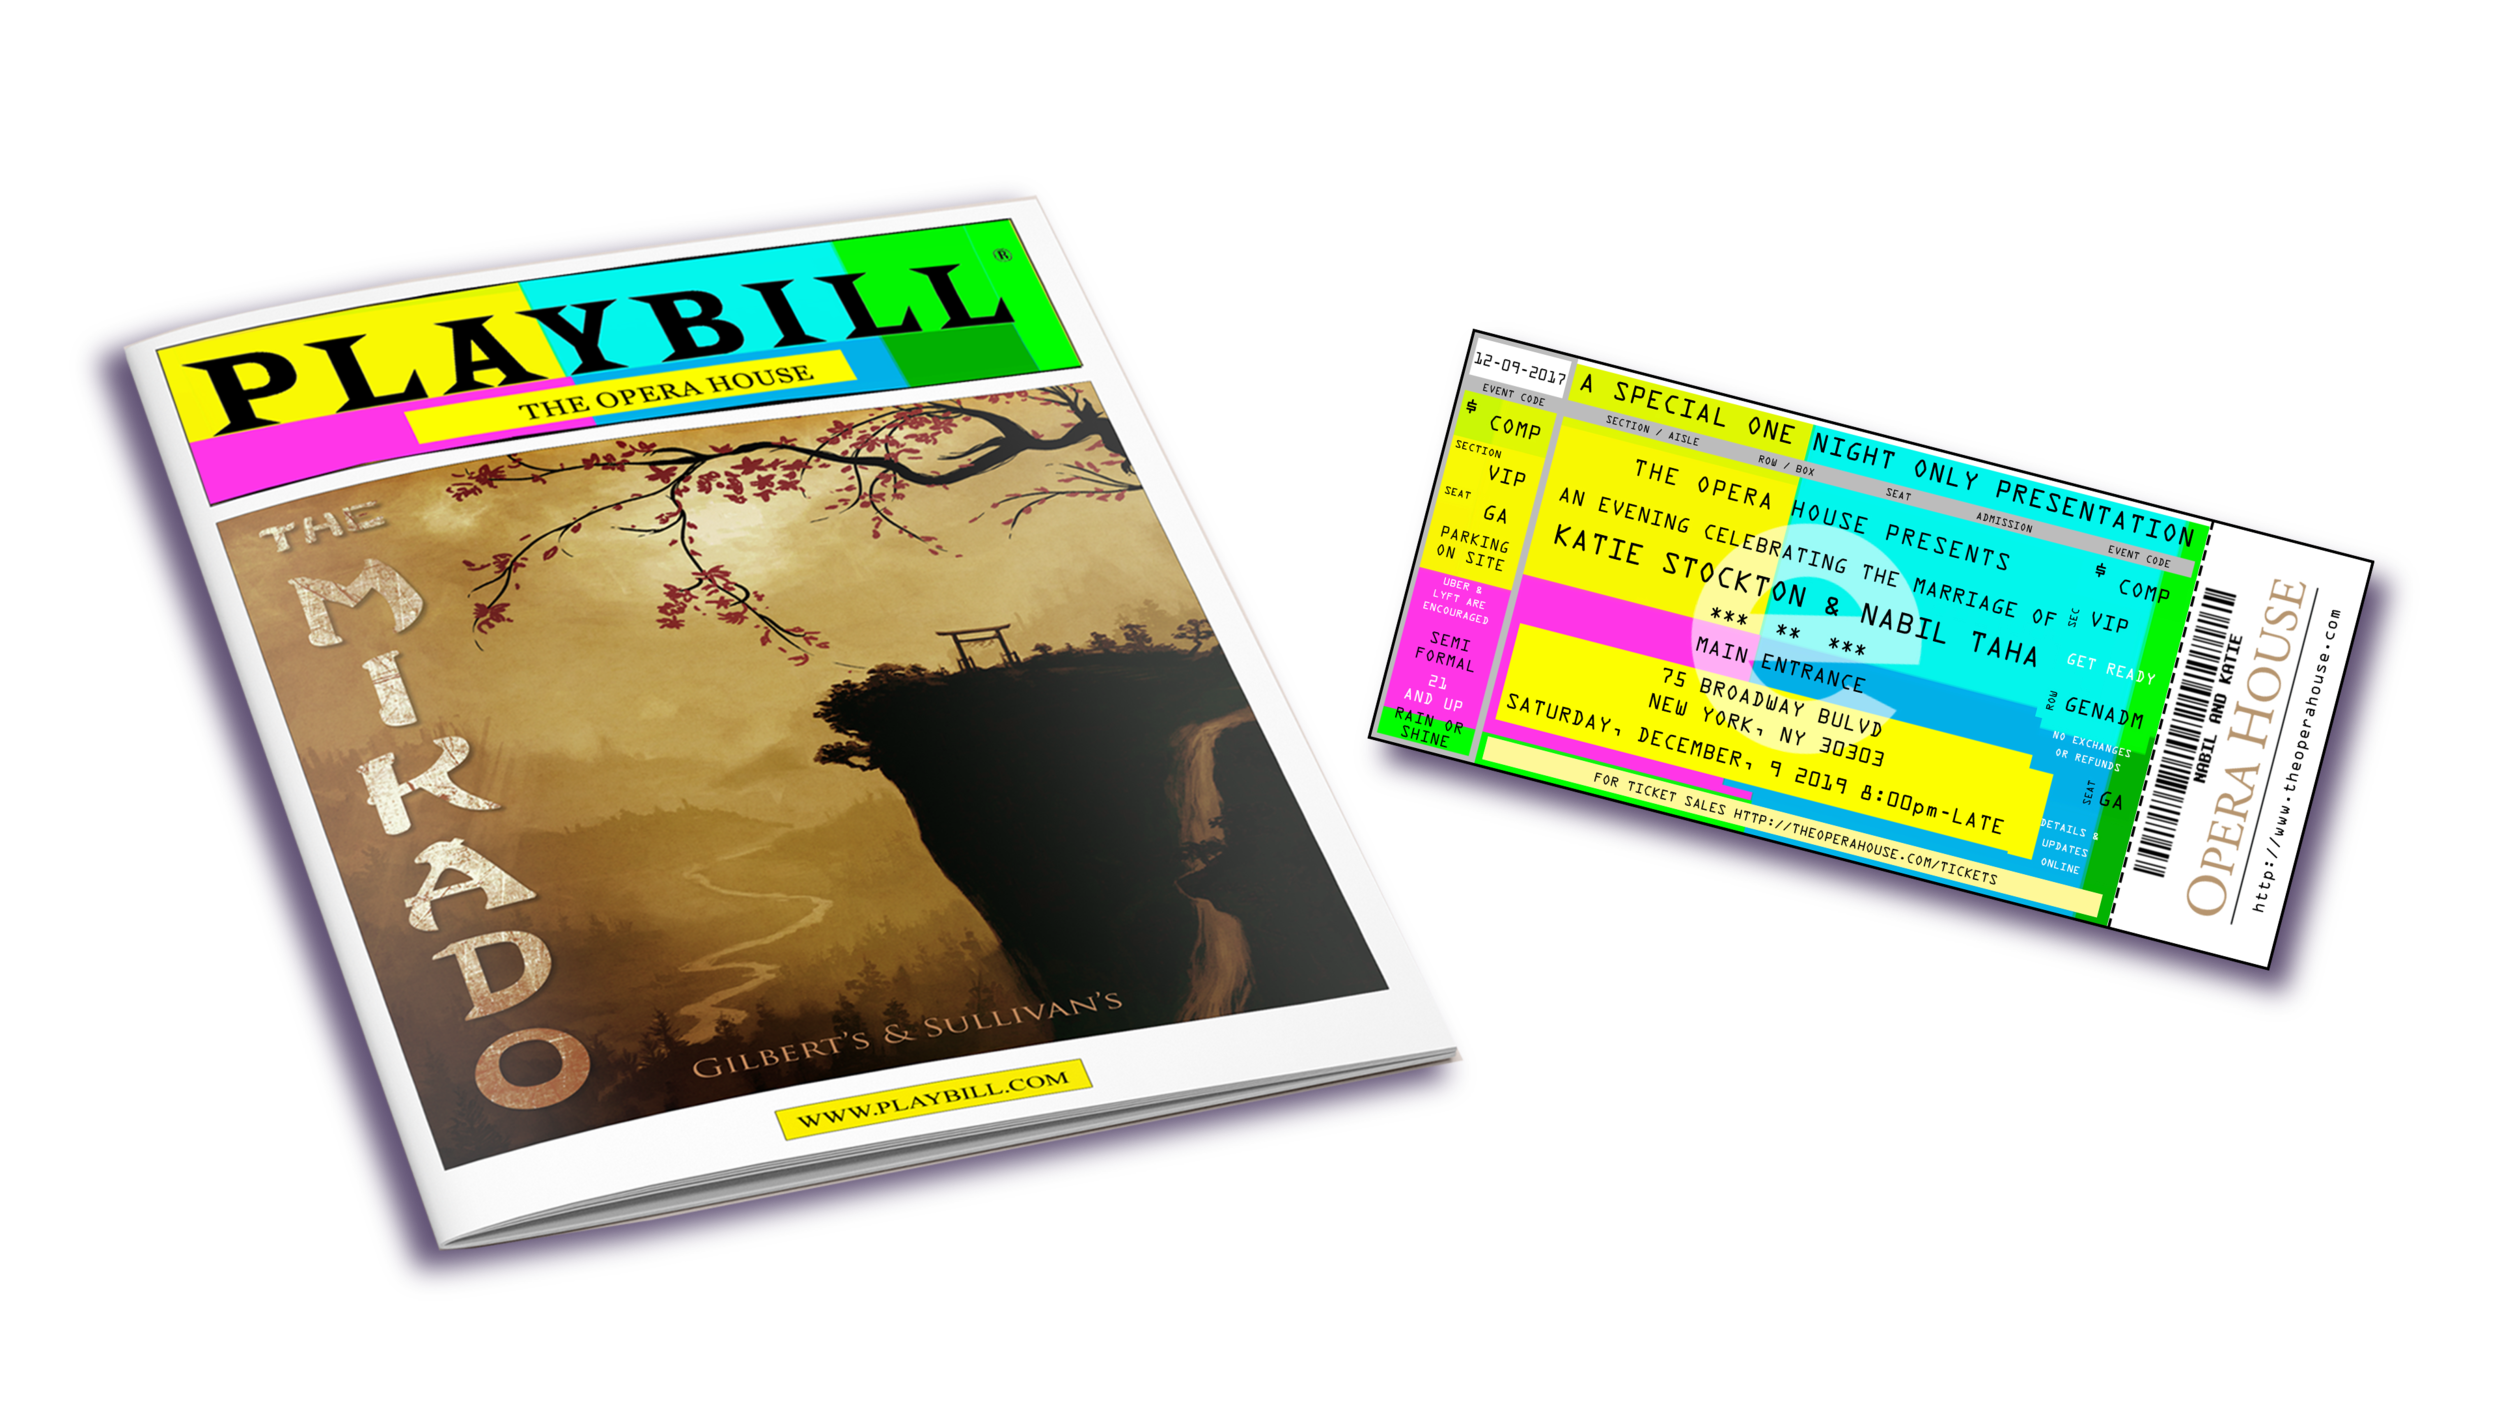 EB_playbill.png